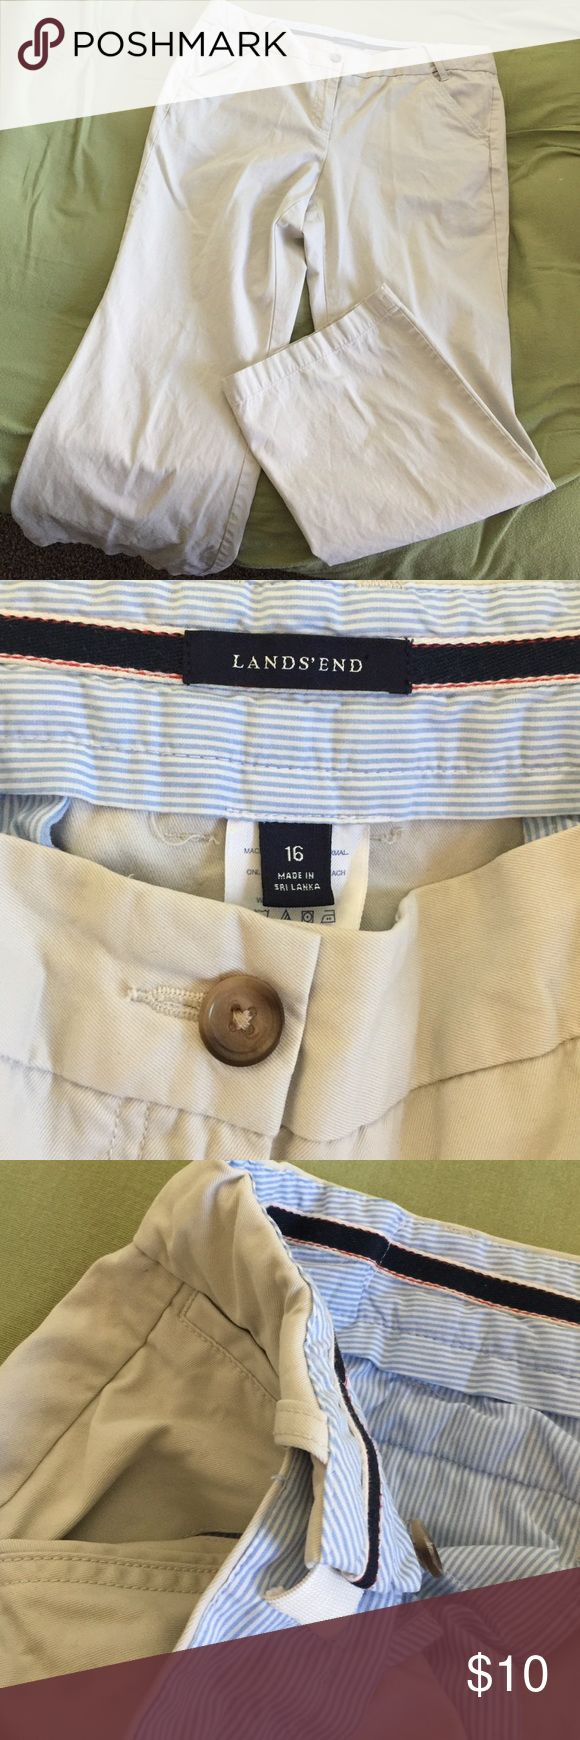 Lands' End stretch fit waist, 💯% cotton pants Cool, comfy, casual business khaki pants. Inner elastic on both sides allows for expansion/dessert with your meal😉 2 pocket + coin/key pocket in front, 2 pocket buttoned backside, slightly used look, cuffs in good condition. Lands' End Pants Wide Leg